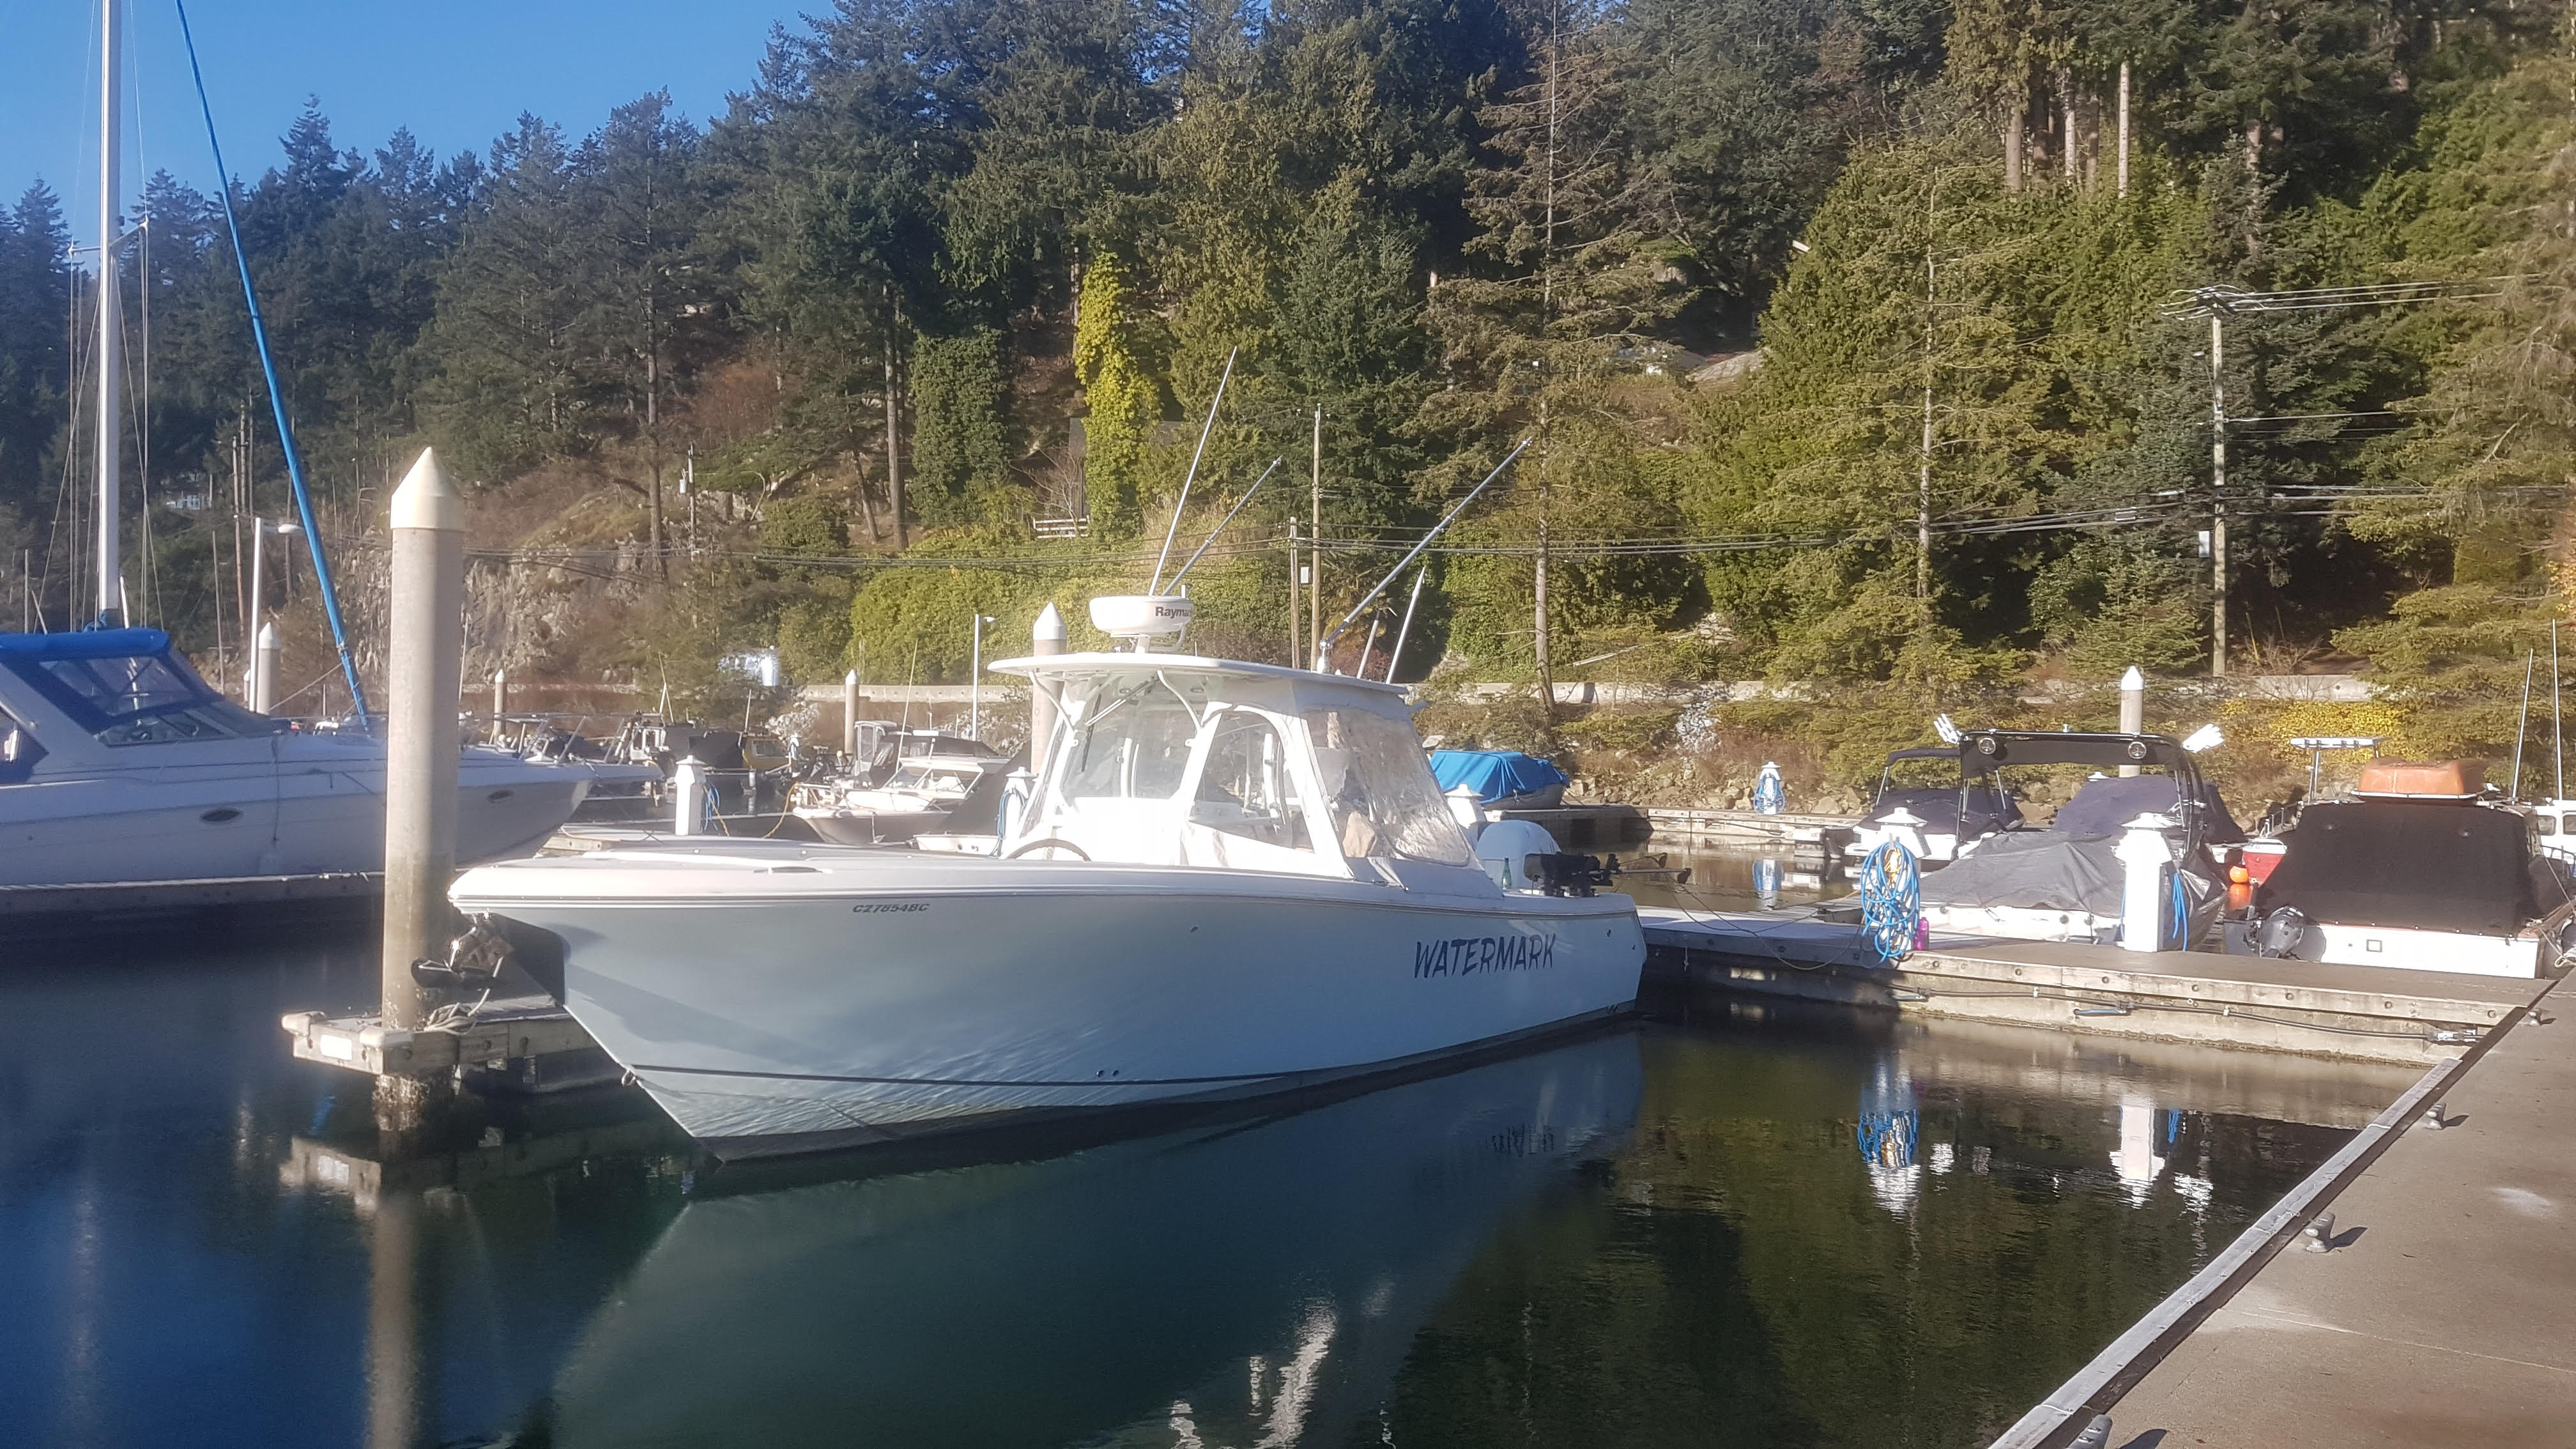 Watermark Fishing Vessel For Fishing Charters In BC